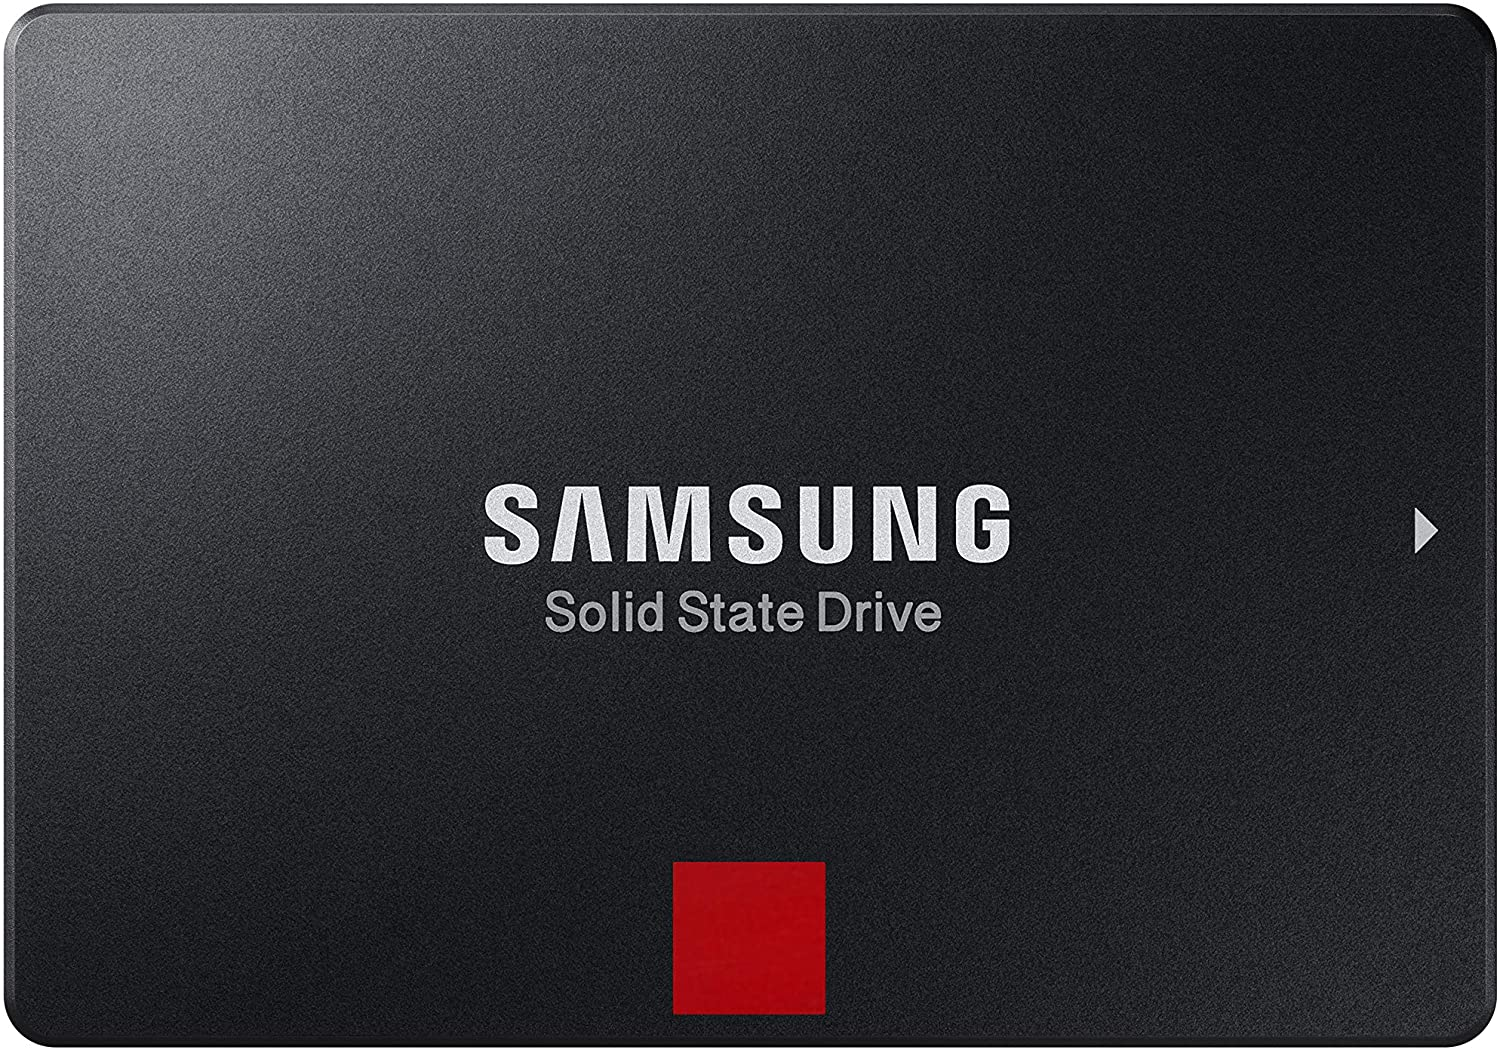 Samsung 860 EVO PRO SSD 1TB - 2.5 Inch SATA 3 Internal Solid State Drive with V-NAND Technology (MZ-76P1T0BW)